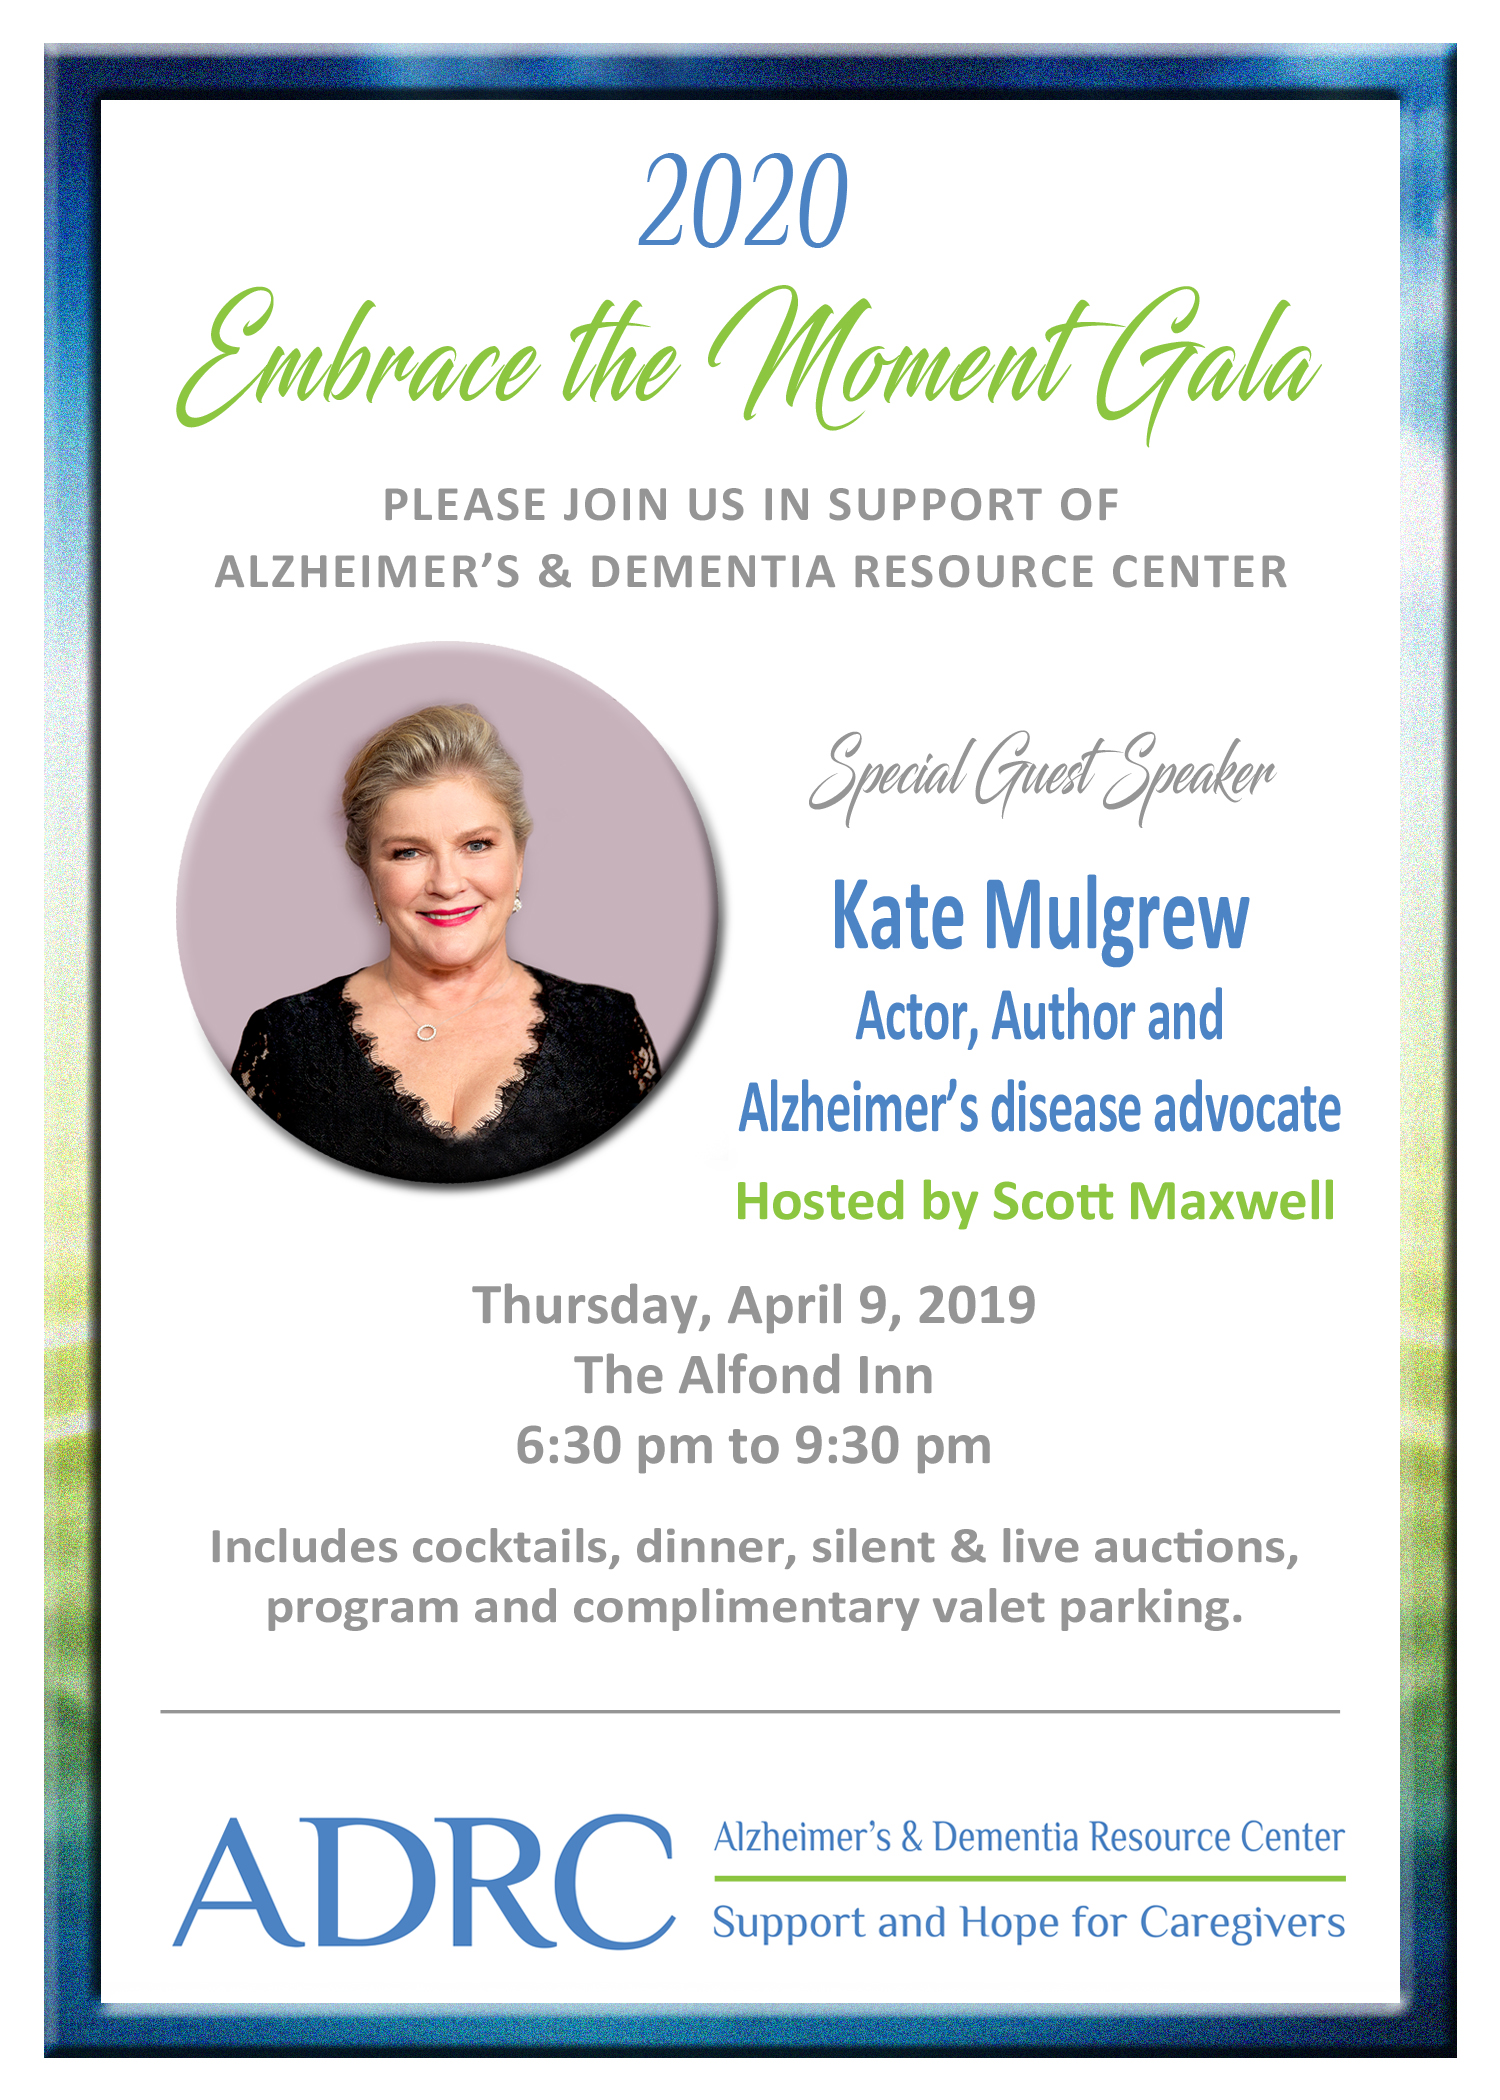 2020 Embrace the Moment Gala